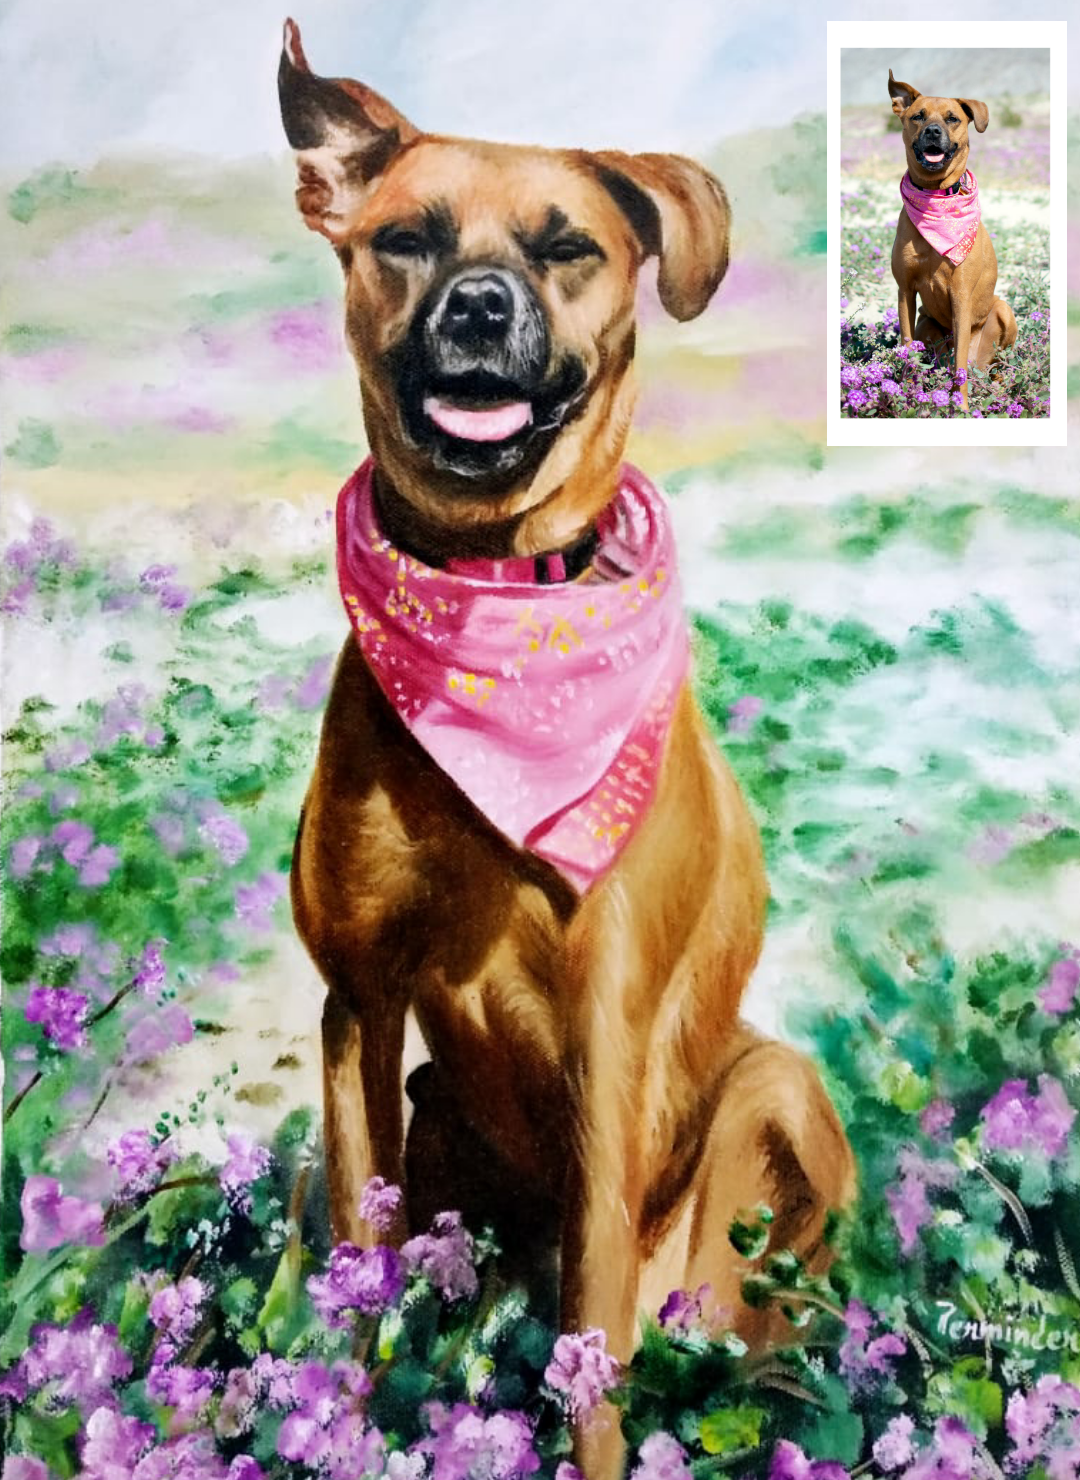 Hand-made Pet Portraits (Valentine's Day Gifts for Boyfriends)